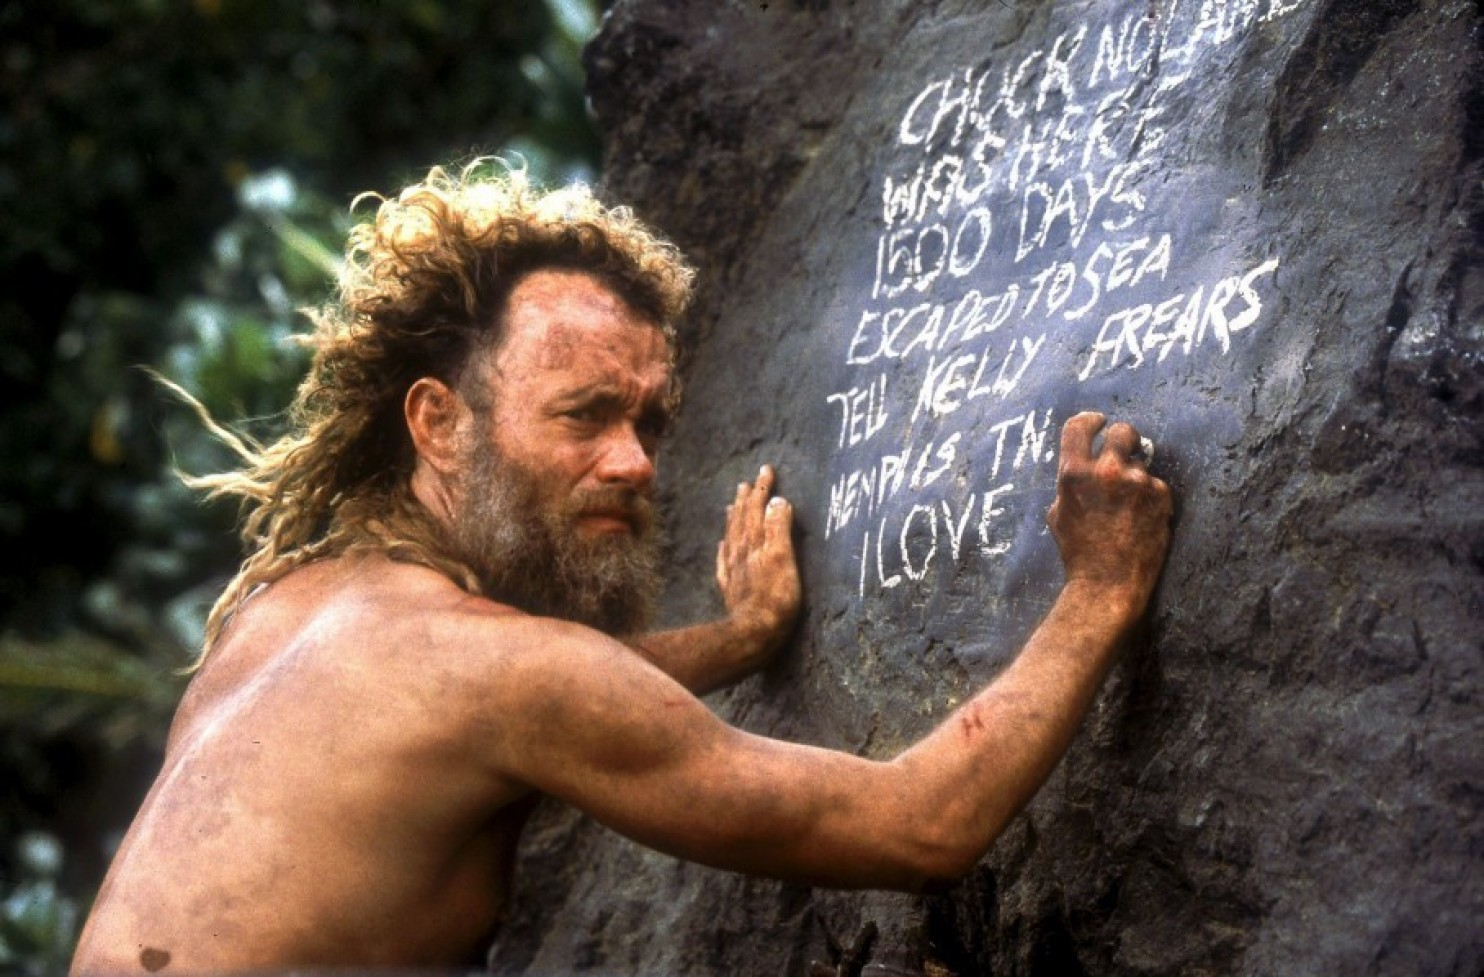 5-most-dangerous-roles-Tom Hanks–Cast Away